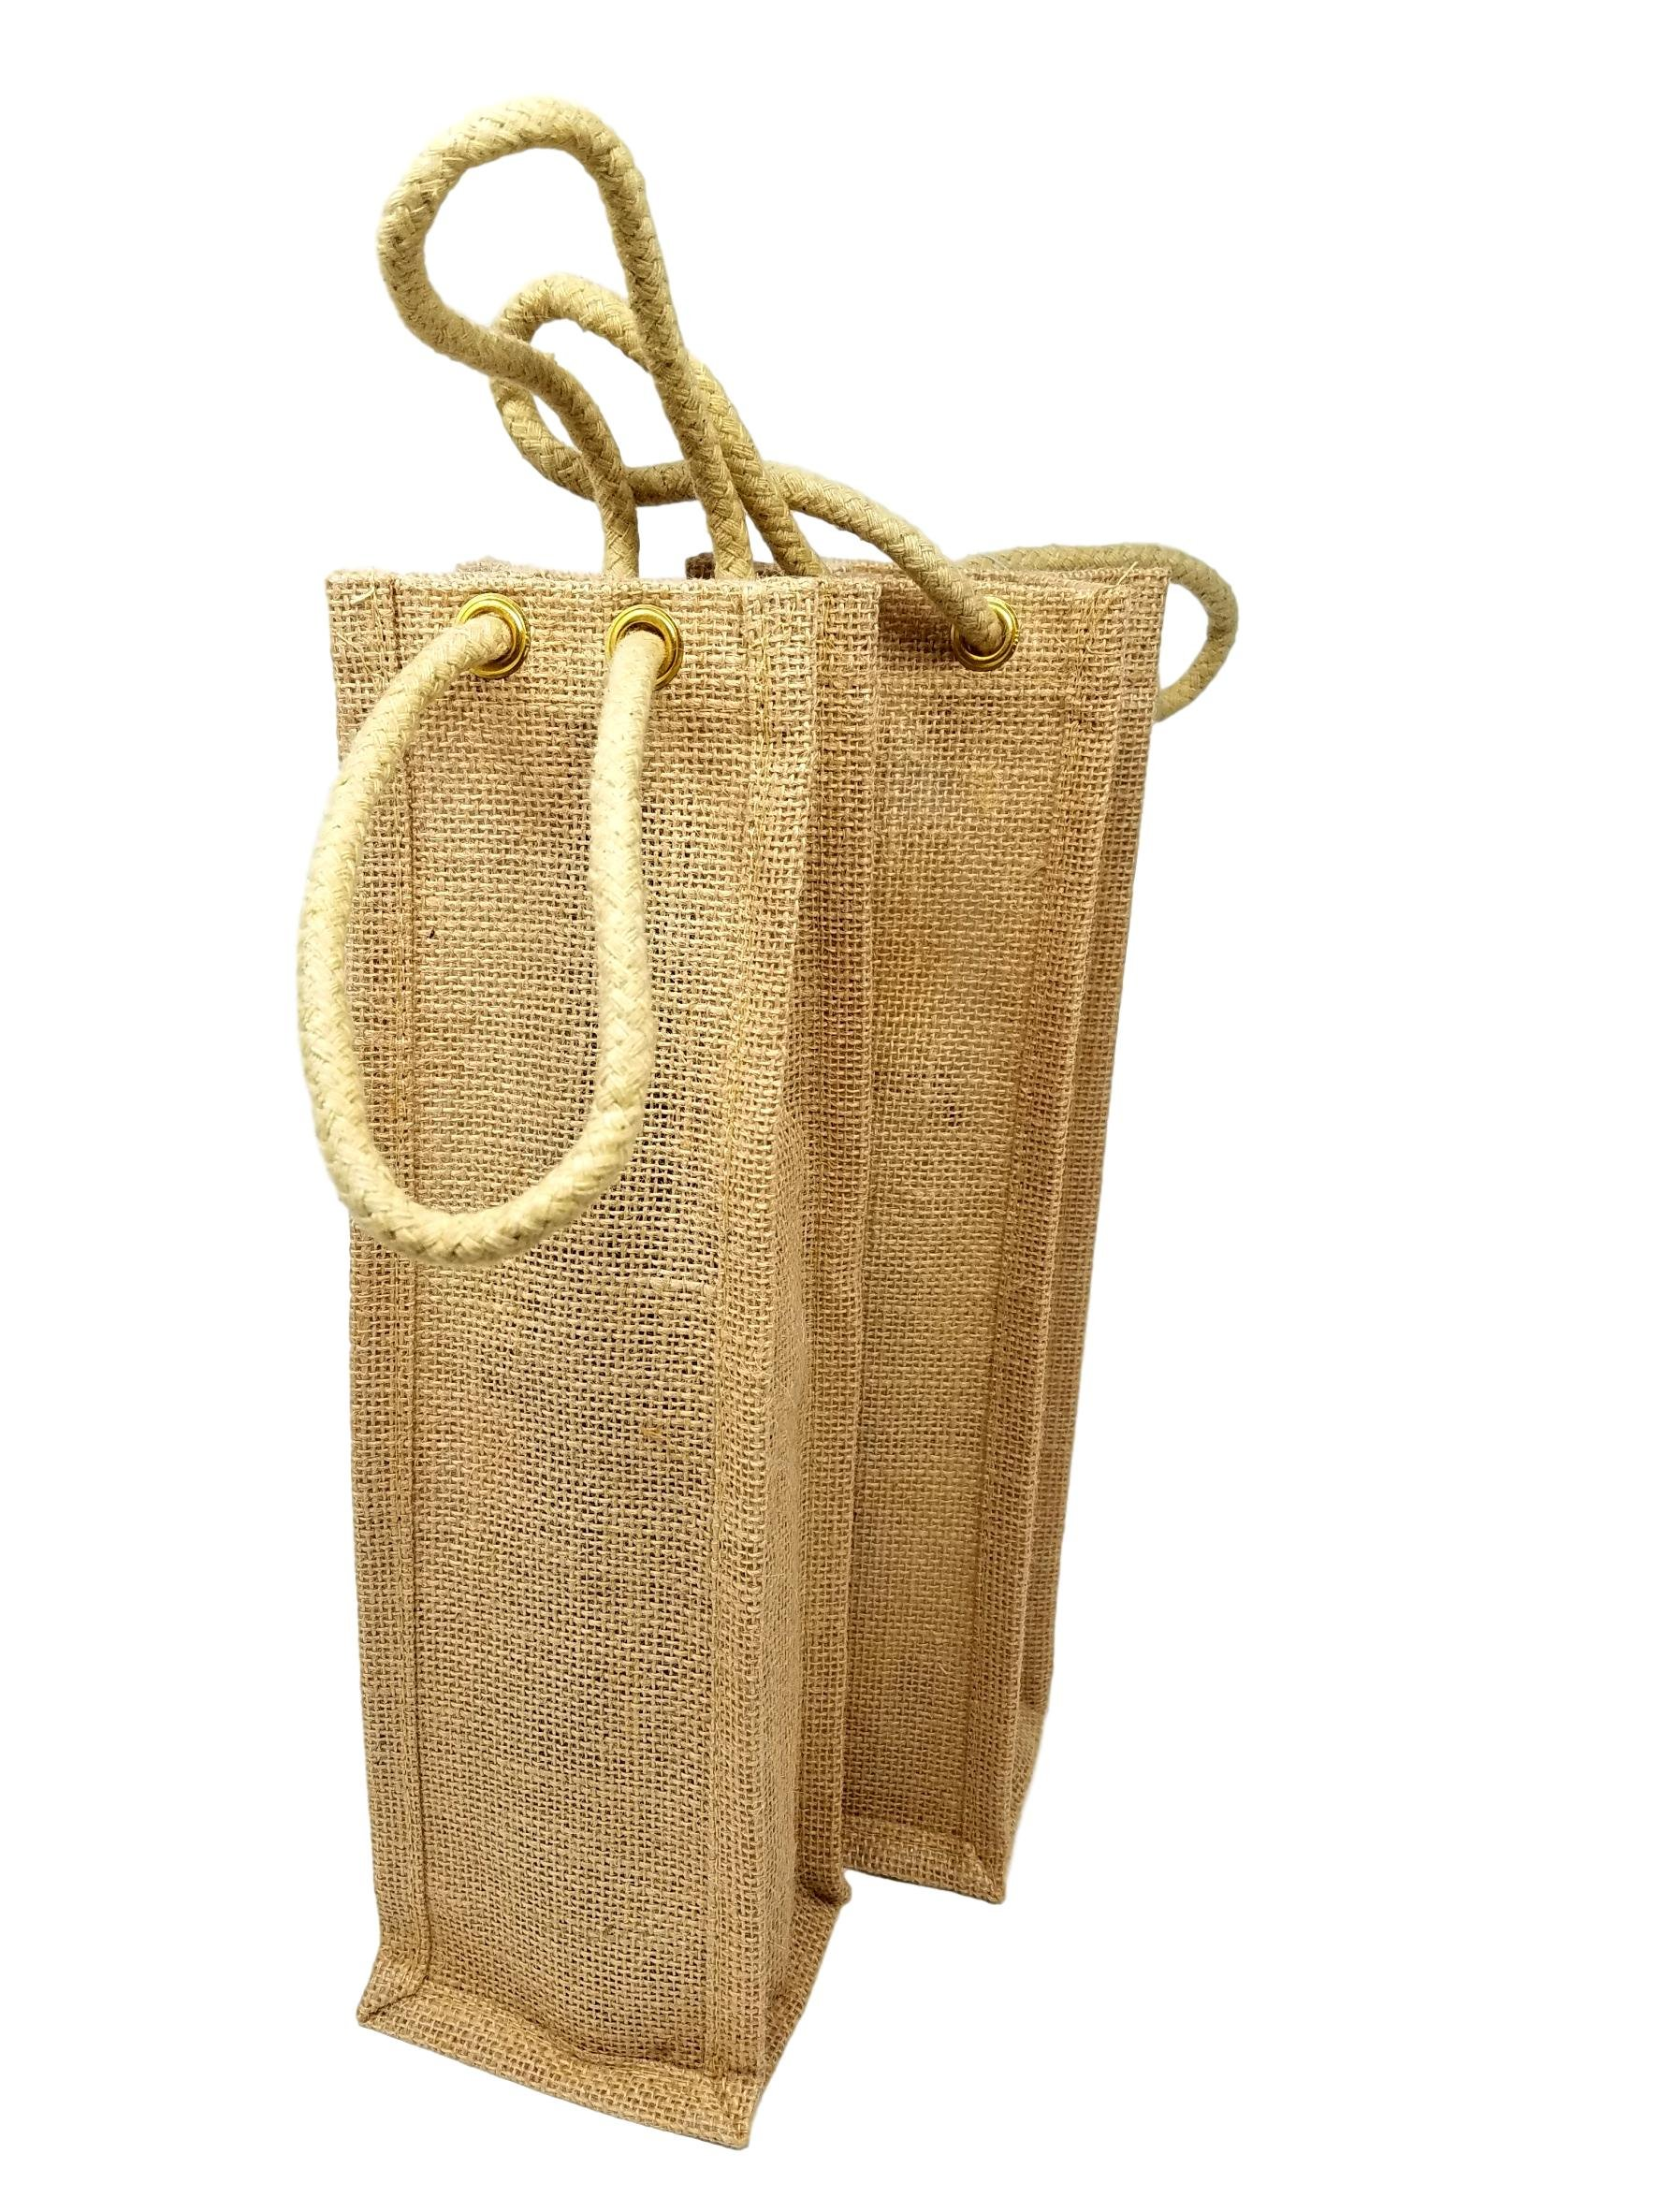 Wine Gift Bags - Reusable, Burlap Travel Bottle Carrier with Handles